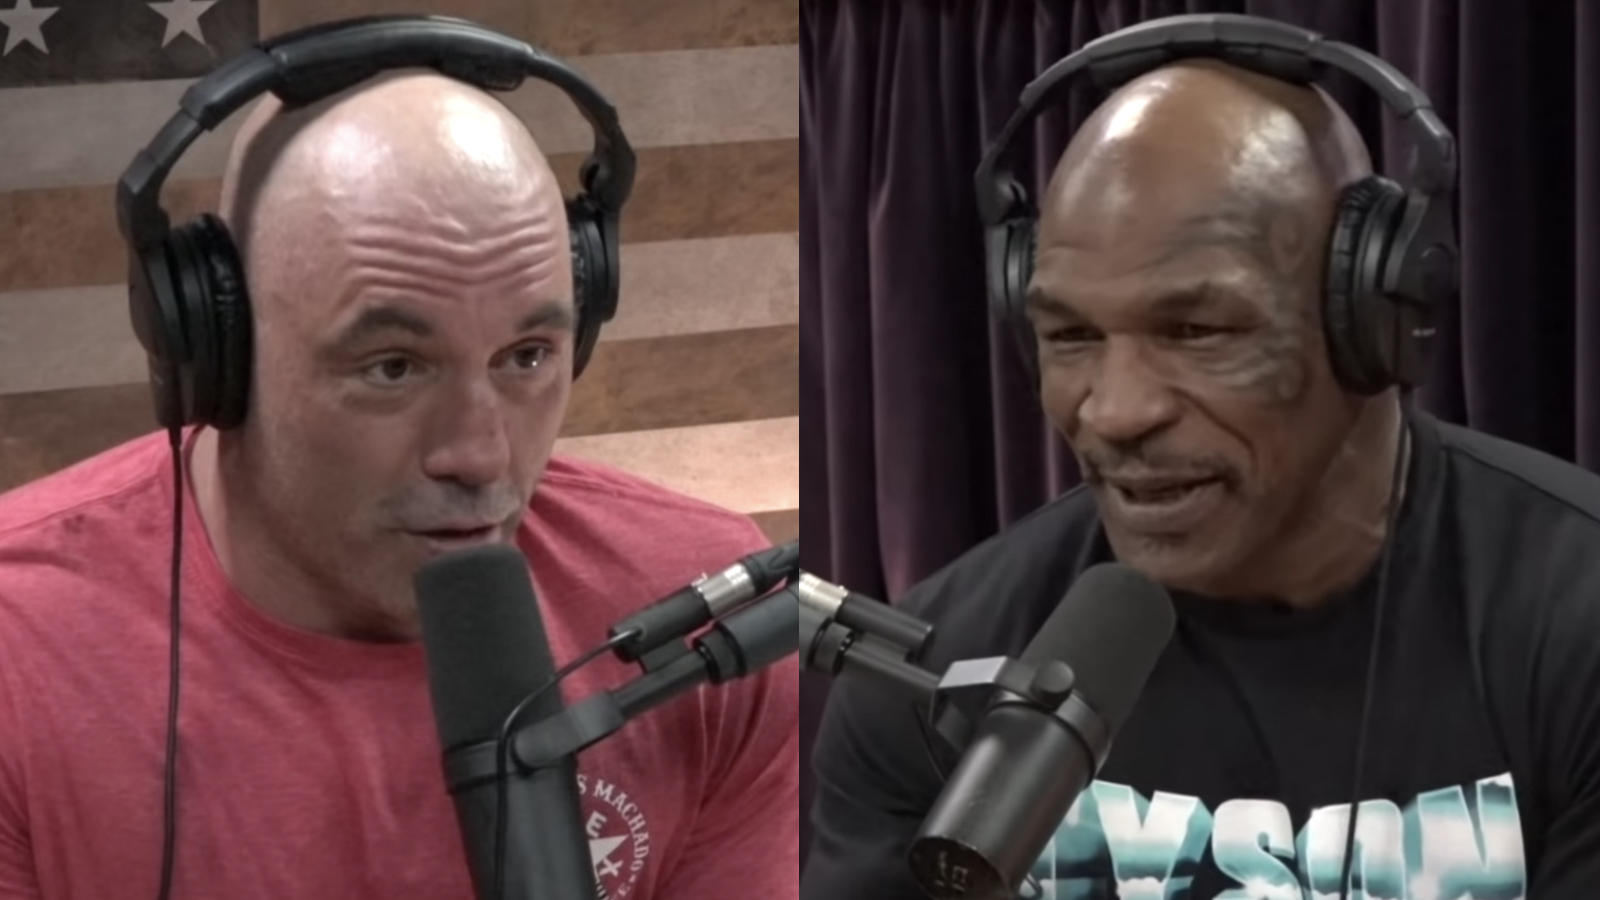 Joe Rogan and Mike Tyson on JRE podcast